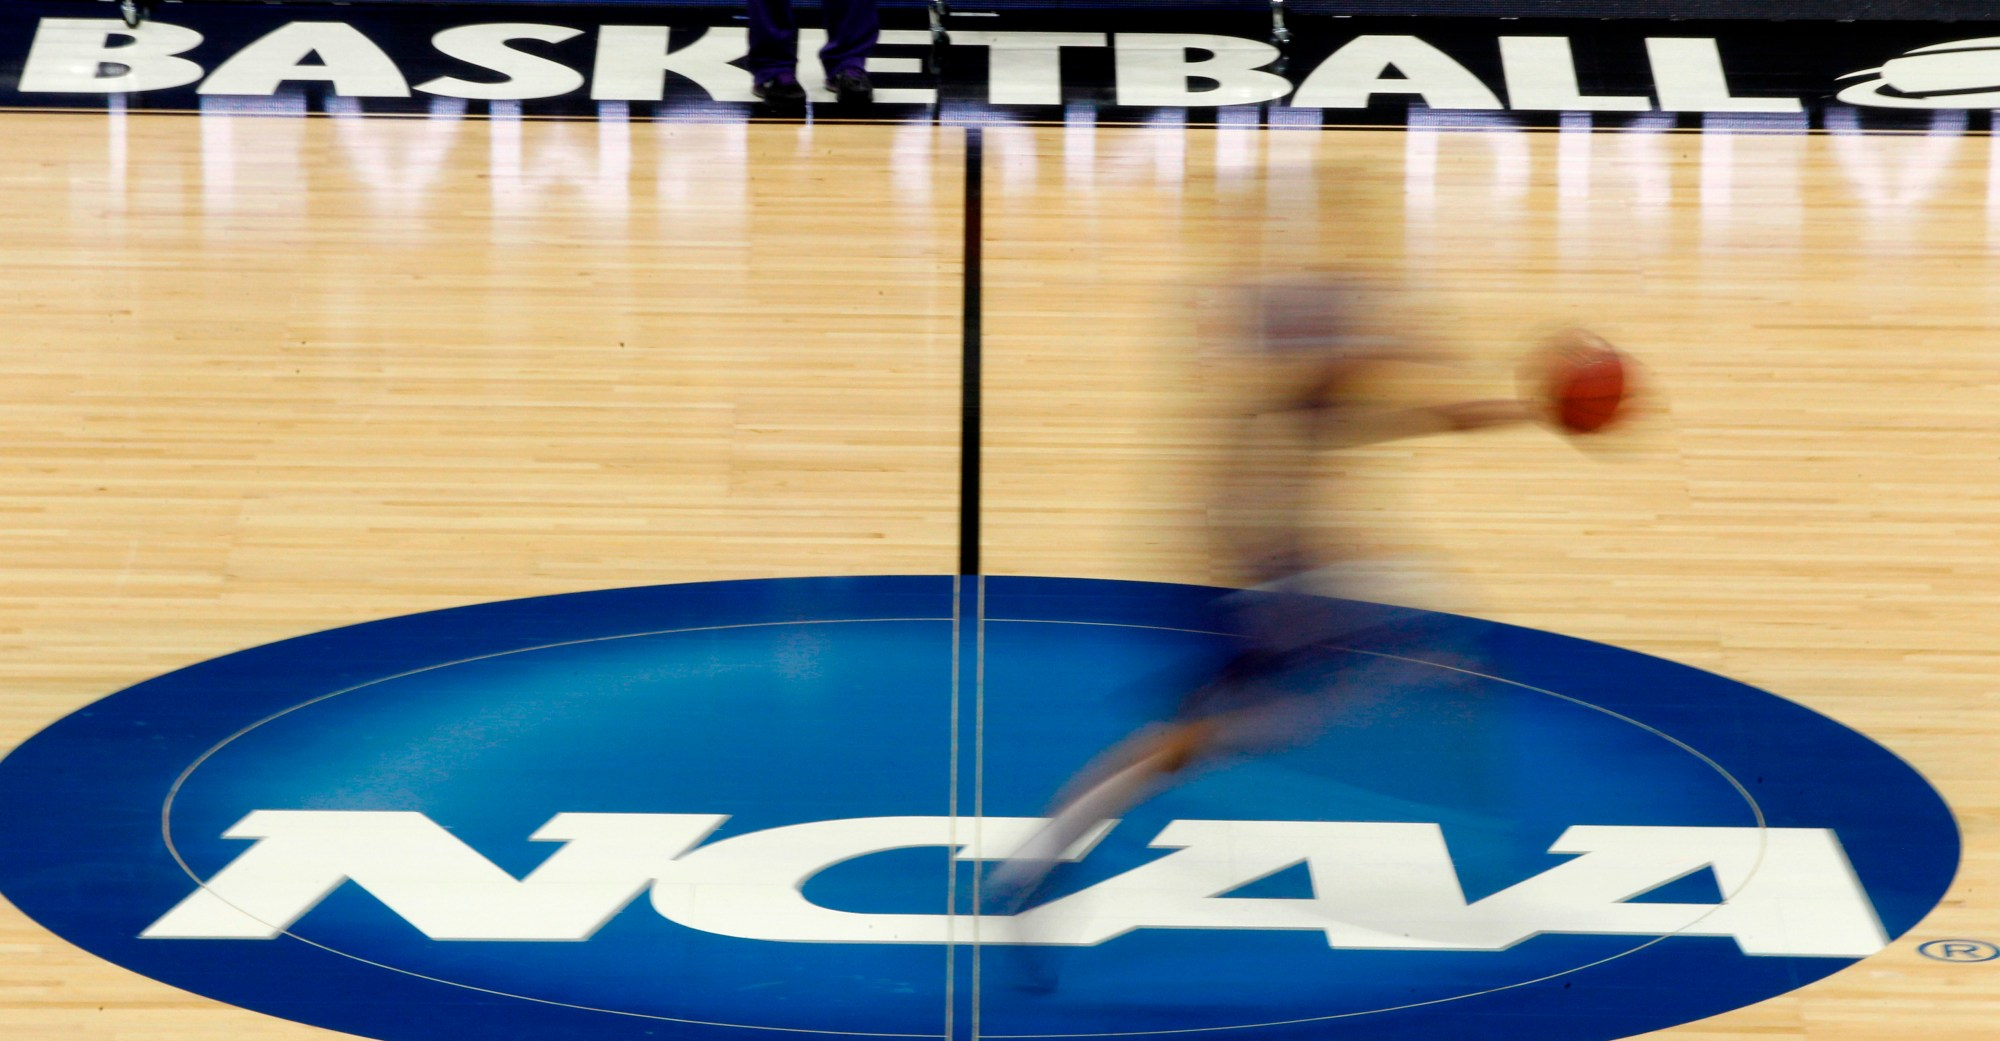 In this March 14, 2012, file photo, a player runs across the NCAA logo during practice in Pittsburgh before an NCAA tournament college basketball game. (AP Photo/Keith Srakocic, File)